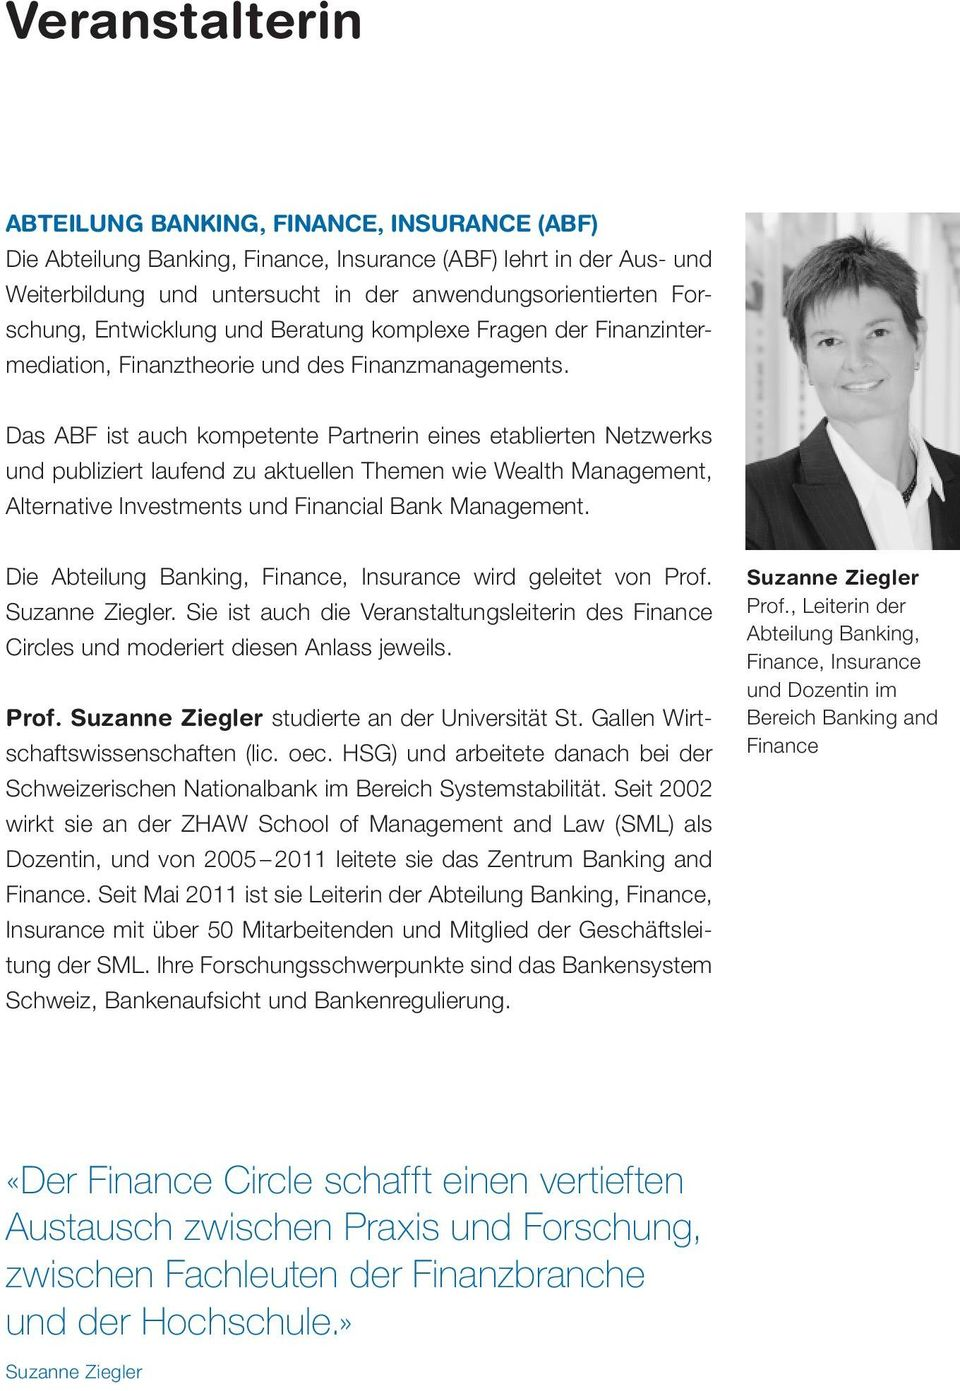 Das ABF ist auch kompetente Partnerin eines etablierten Netzwerks und publiziert laufend zu aktuellen Themen wie Wealth Management, Alternative Investments und Financial Bank Management.